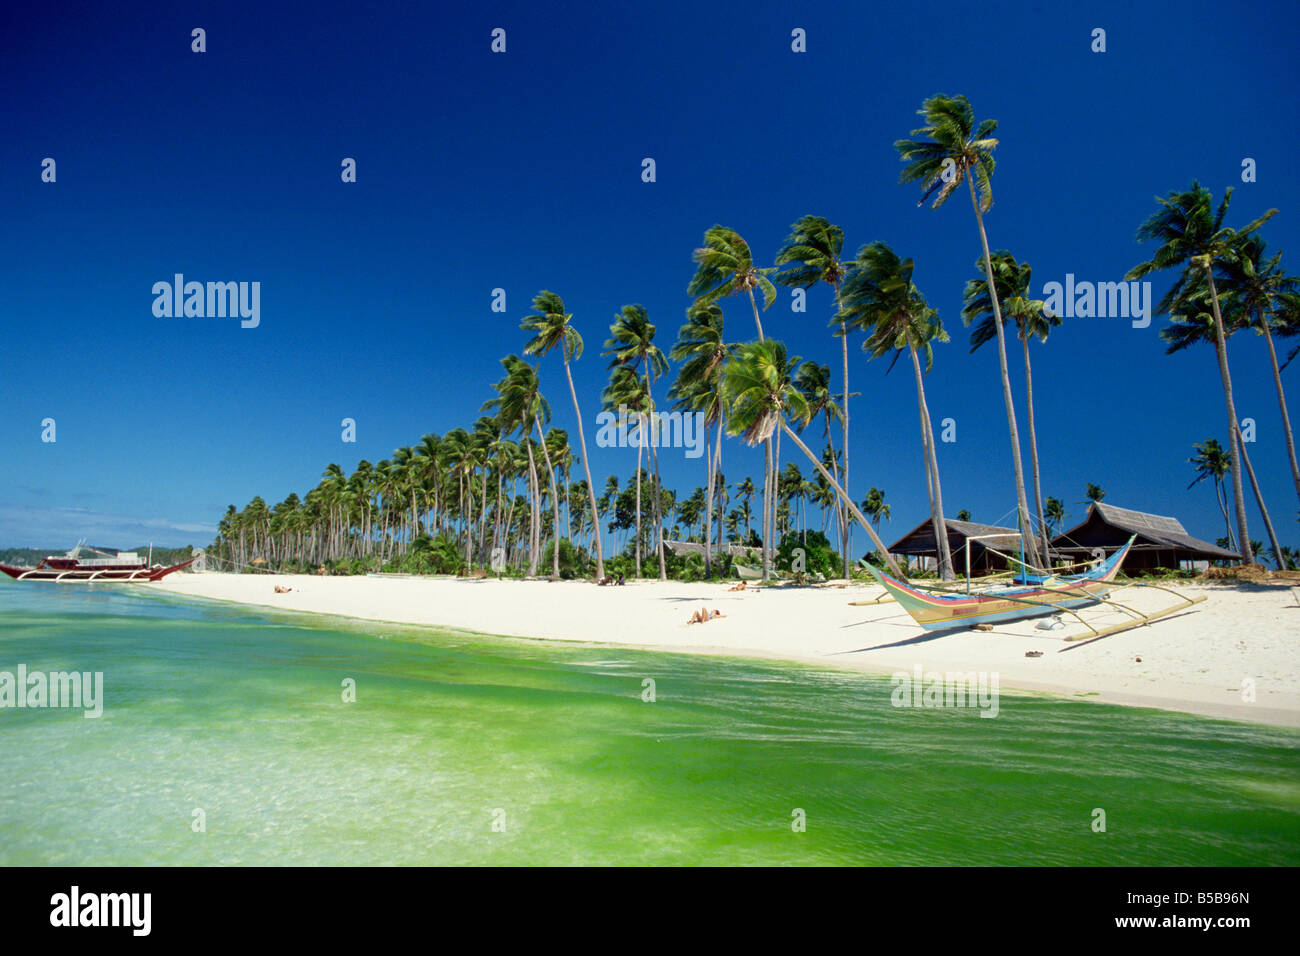 Beach on the west coast of resort island of Boracay off the coast of Panay, in the Philippines, Southeast Asia Stock Photo